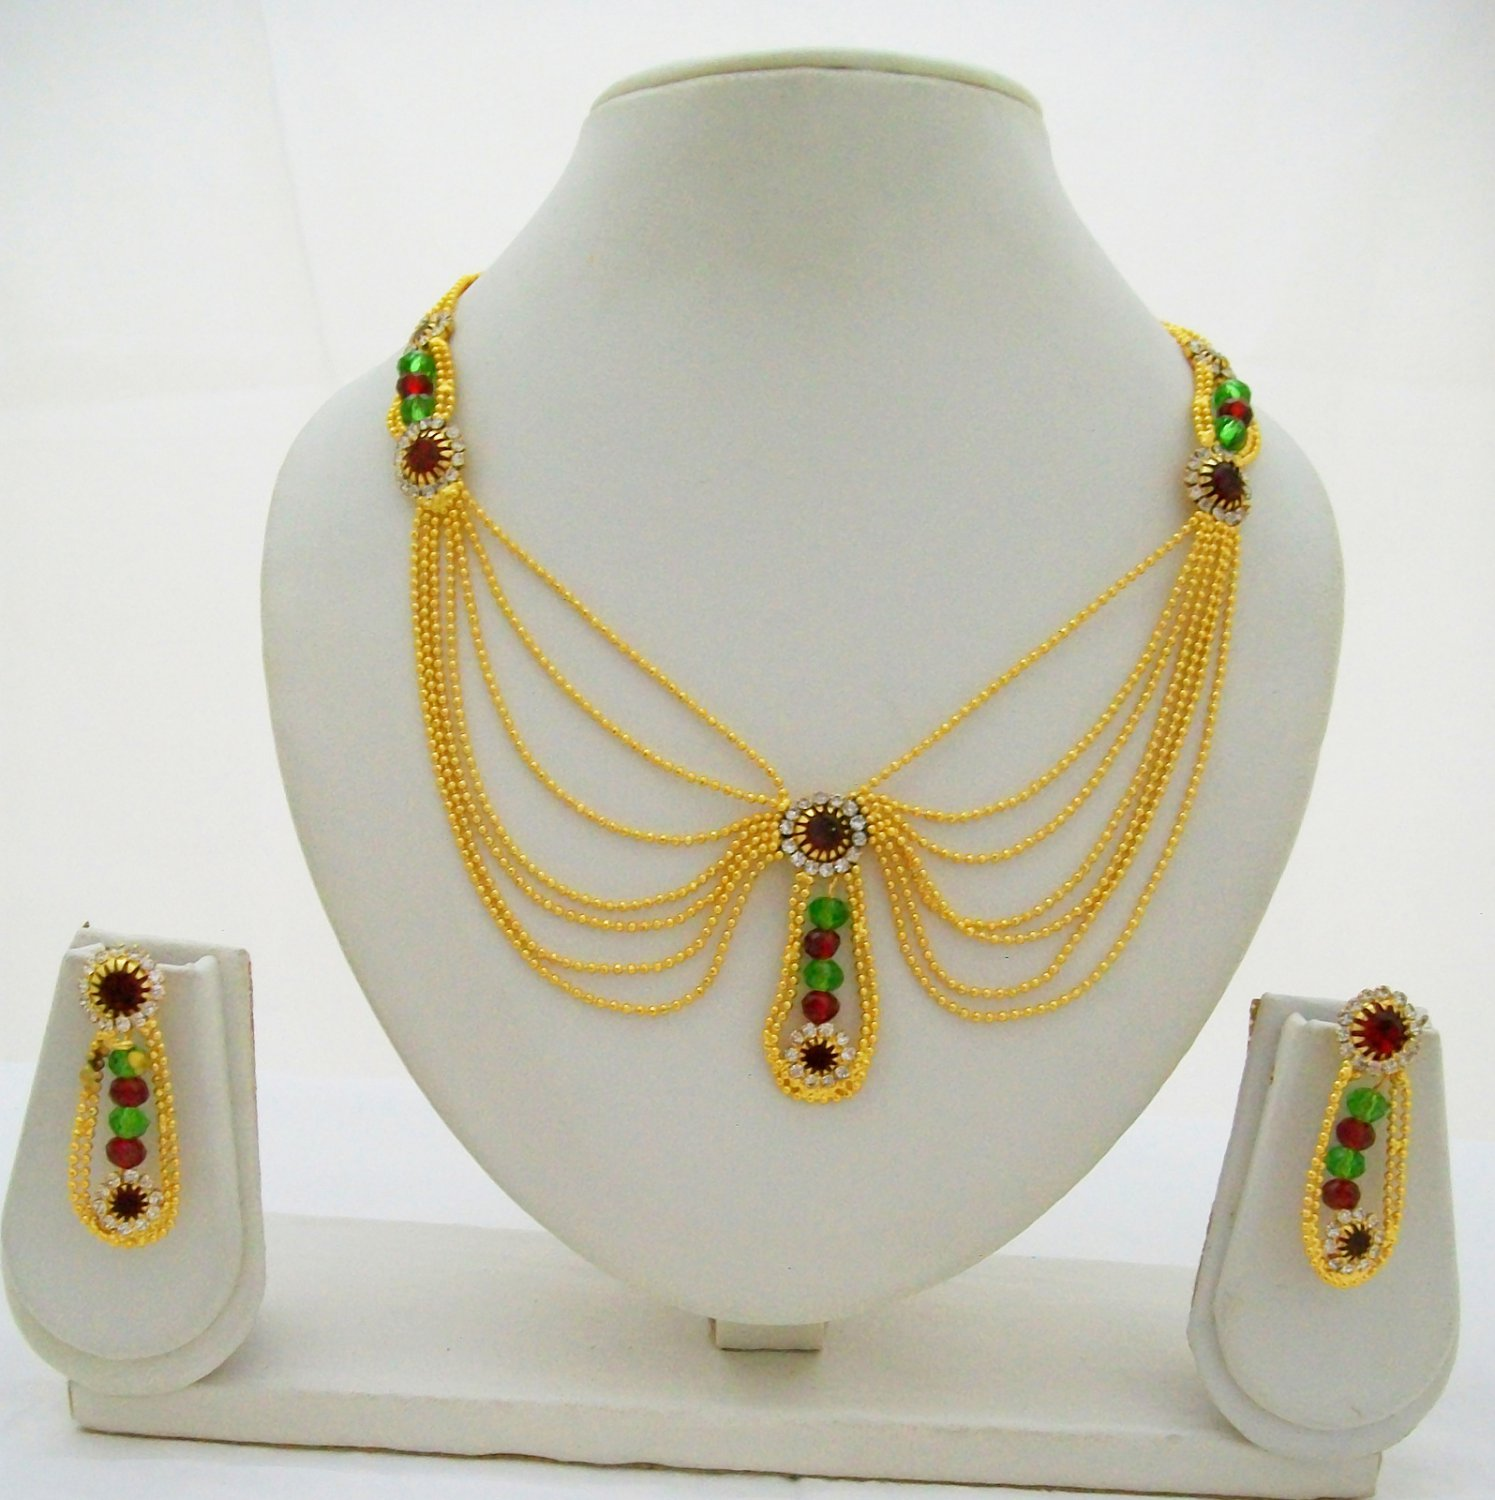 Beads Chain Gold Plated Necklace Multi Strand Layer Yellow Metal